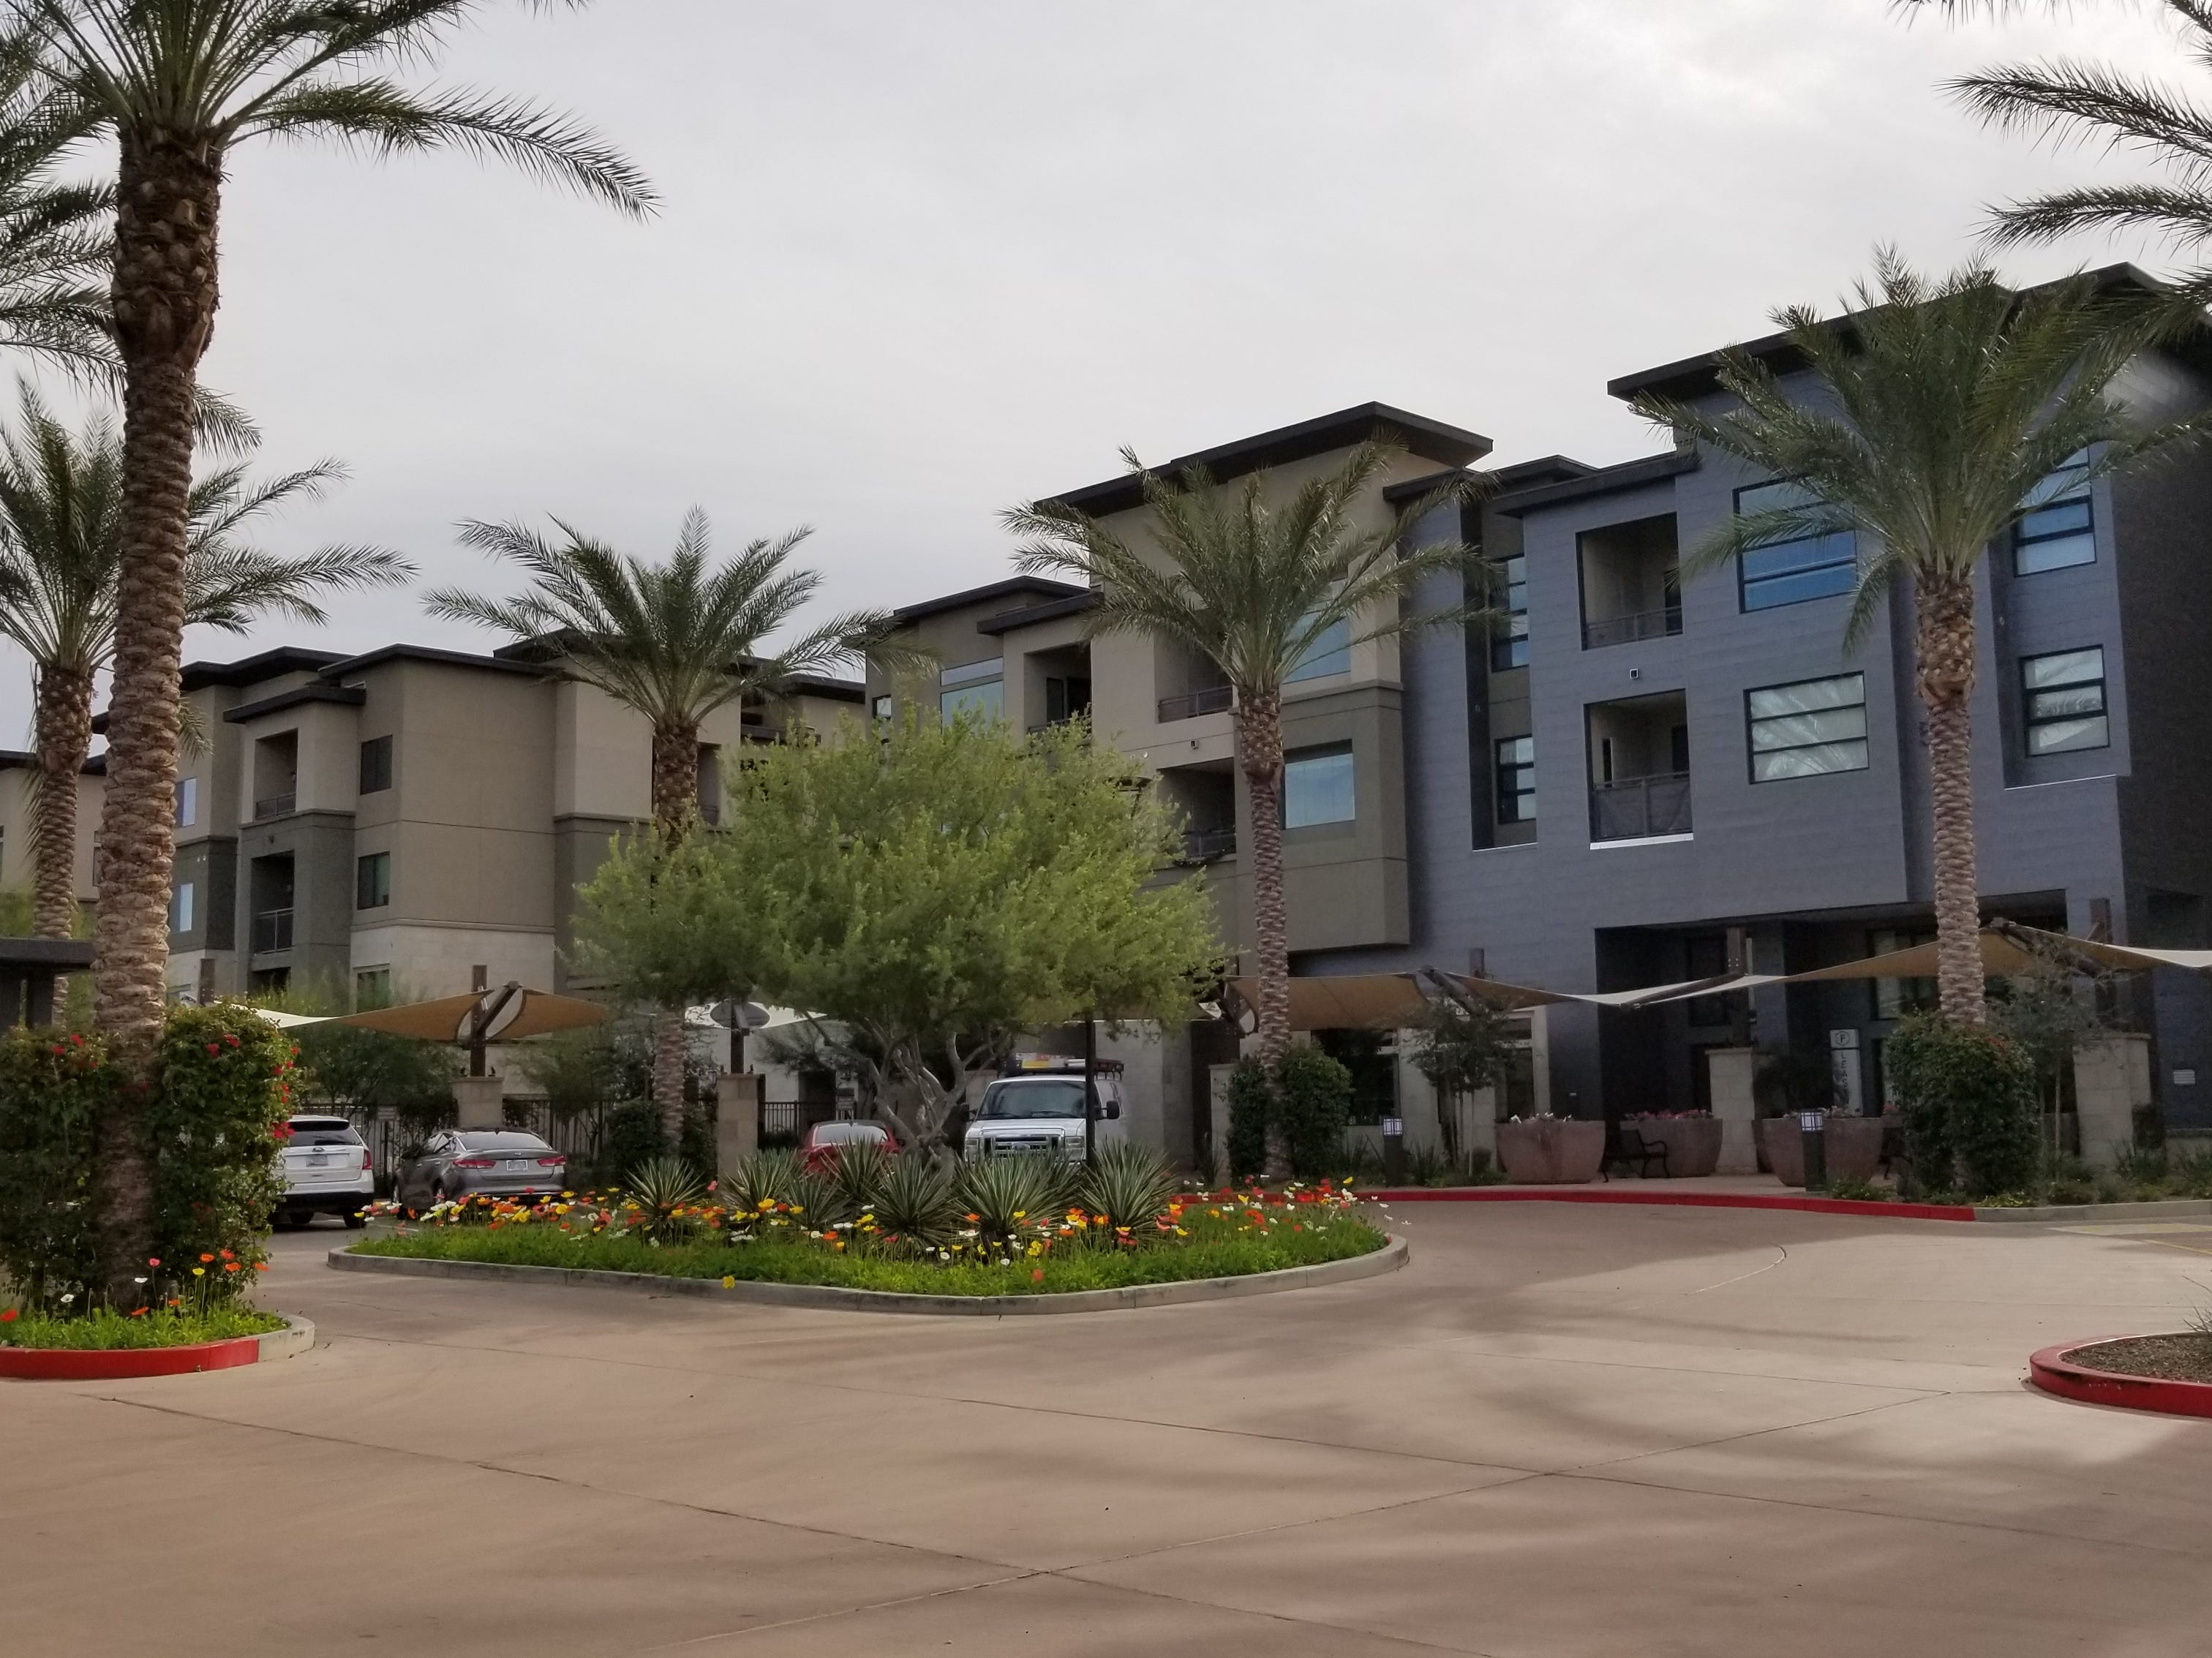 Broadstone Fashion Center, an upscale residential community with 335 units, opened at Chandler Viridian in 2016.